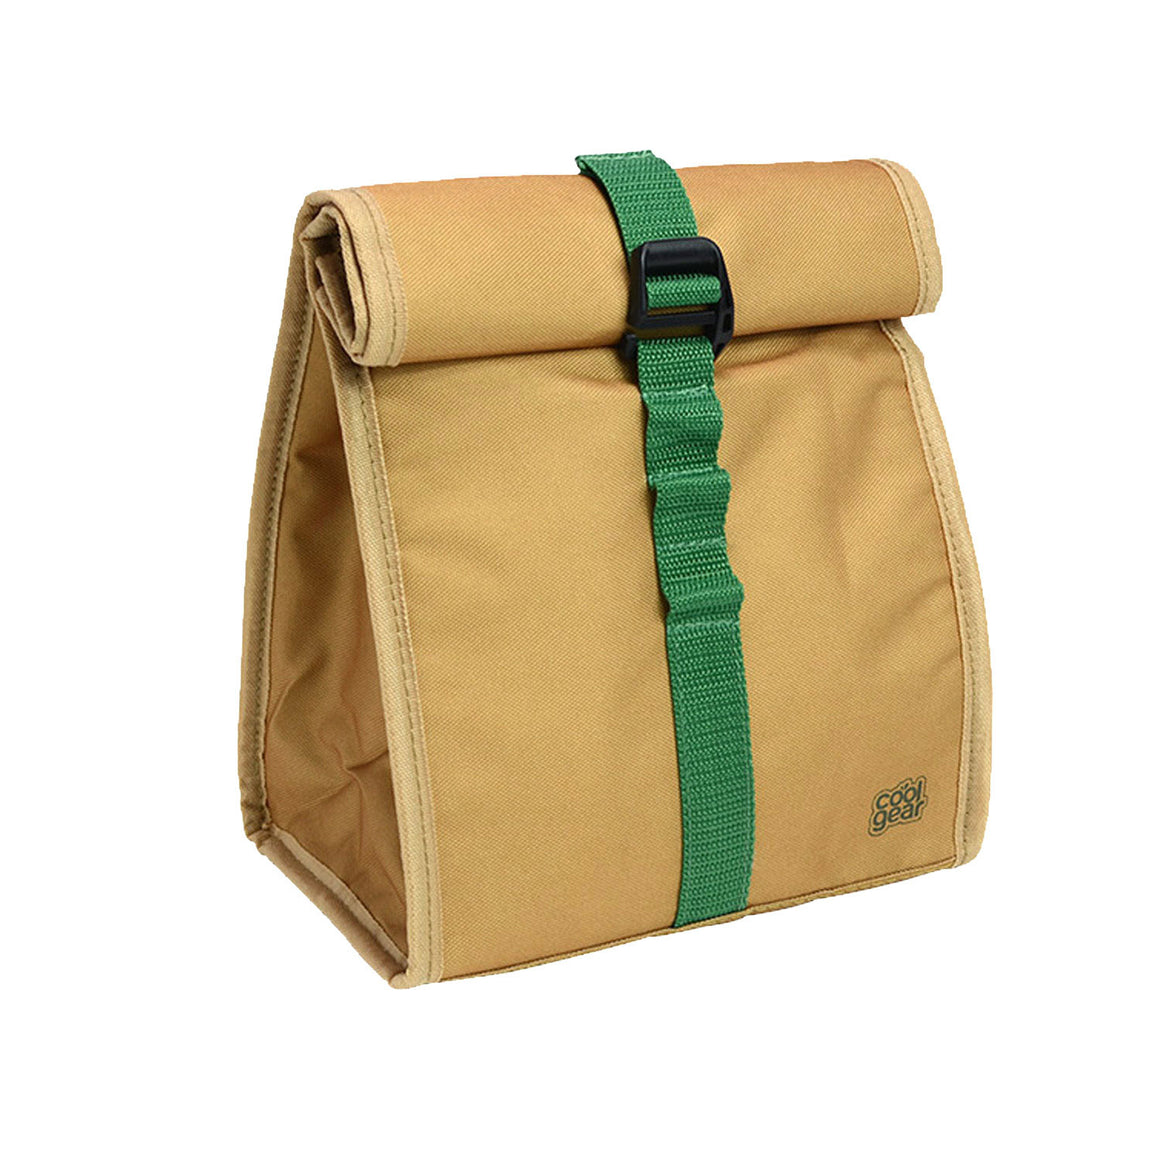 Tan / Blue Brown Baggin It Insulated Lunch Bag at Cool Gear Lunch Bags